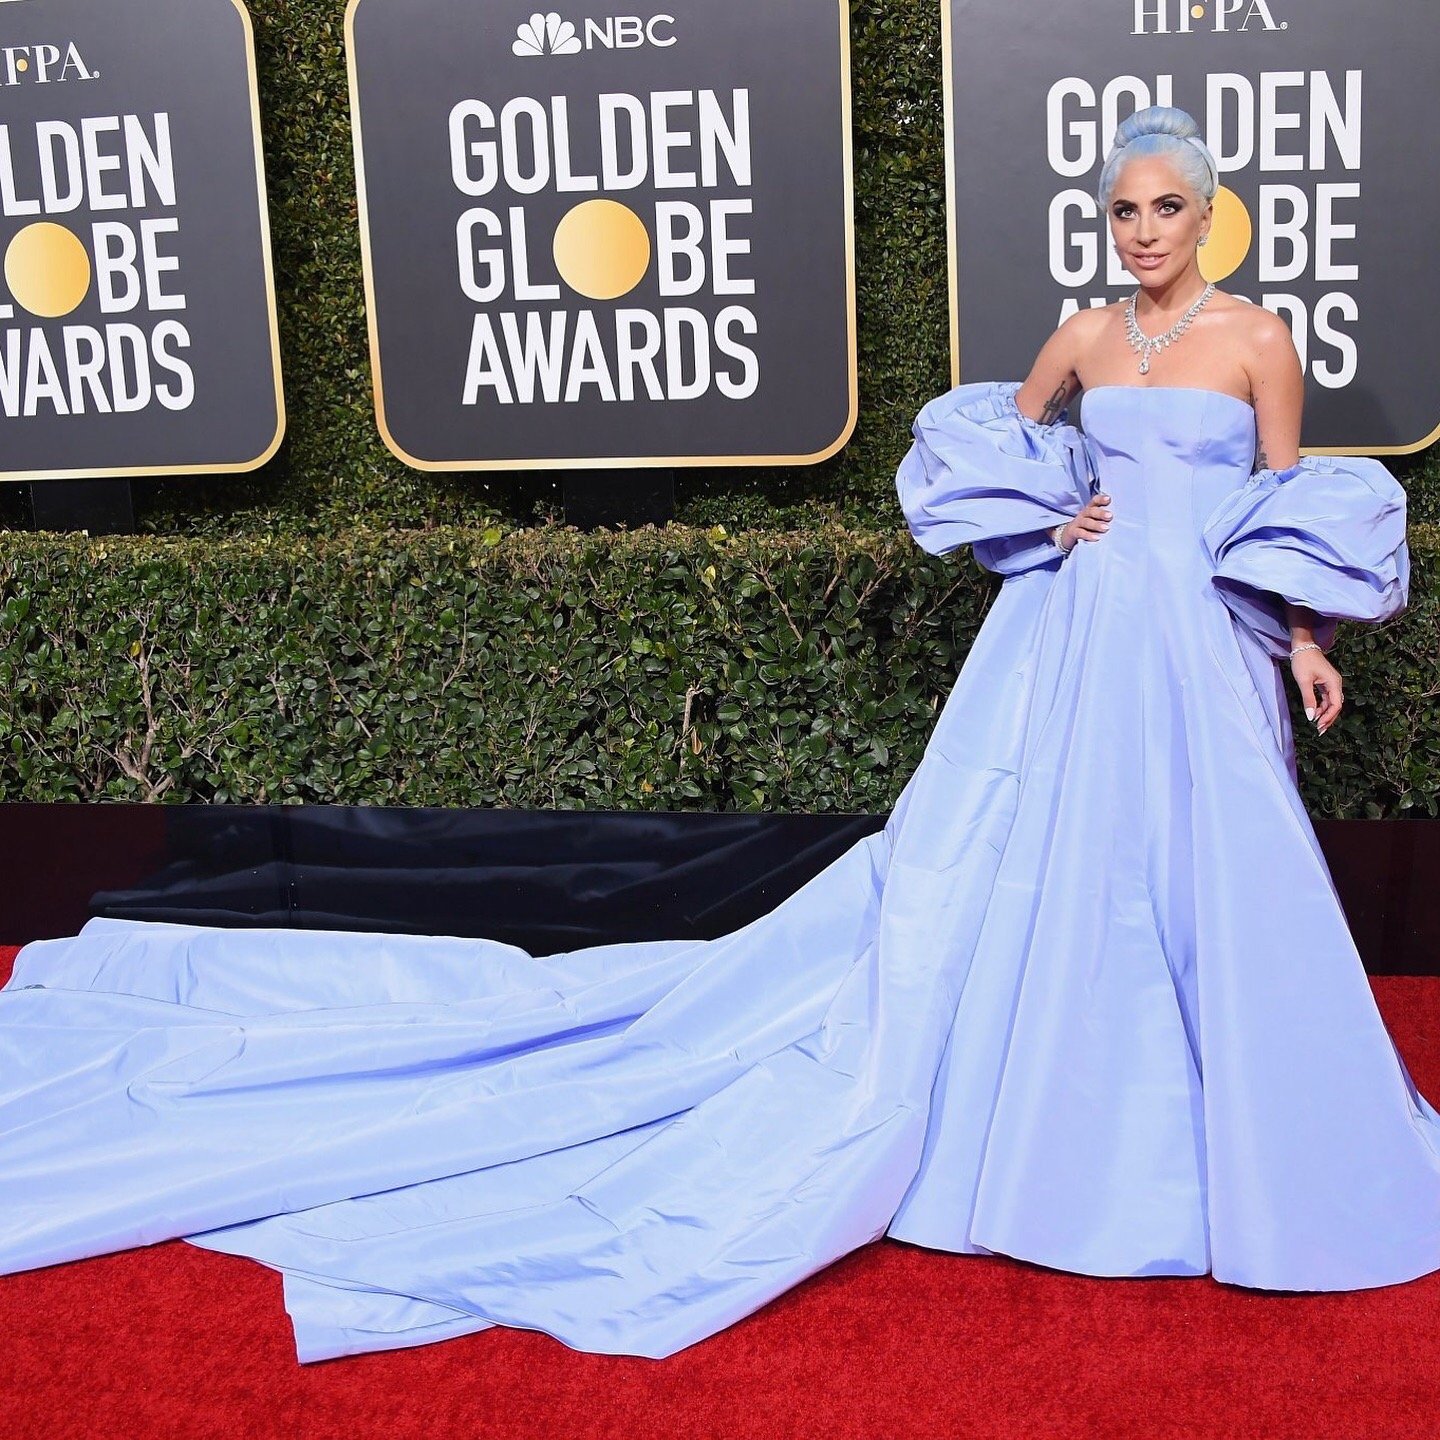 ALL THE BEST LOOKS FROM THE 2019 GOLDEN GLOBES